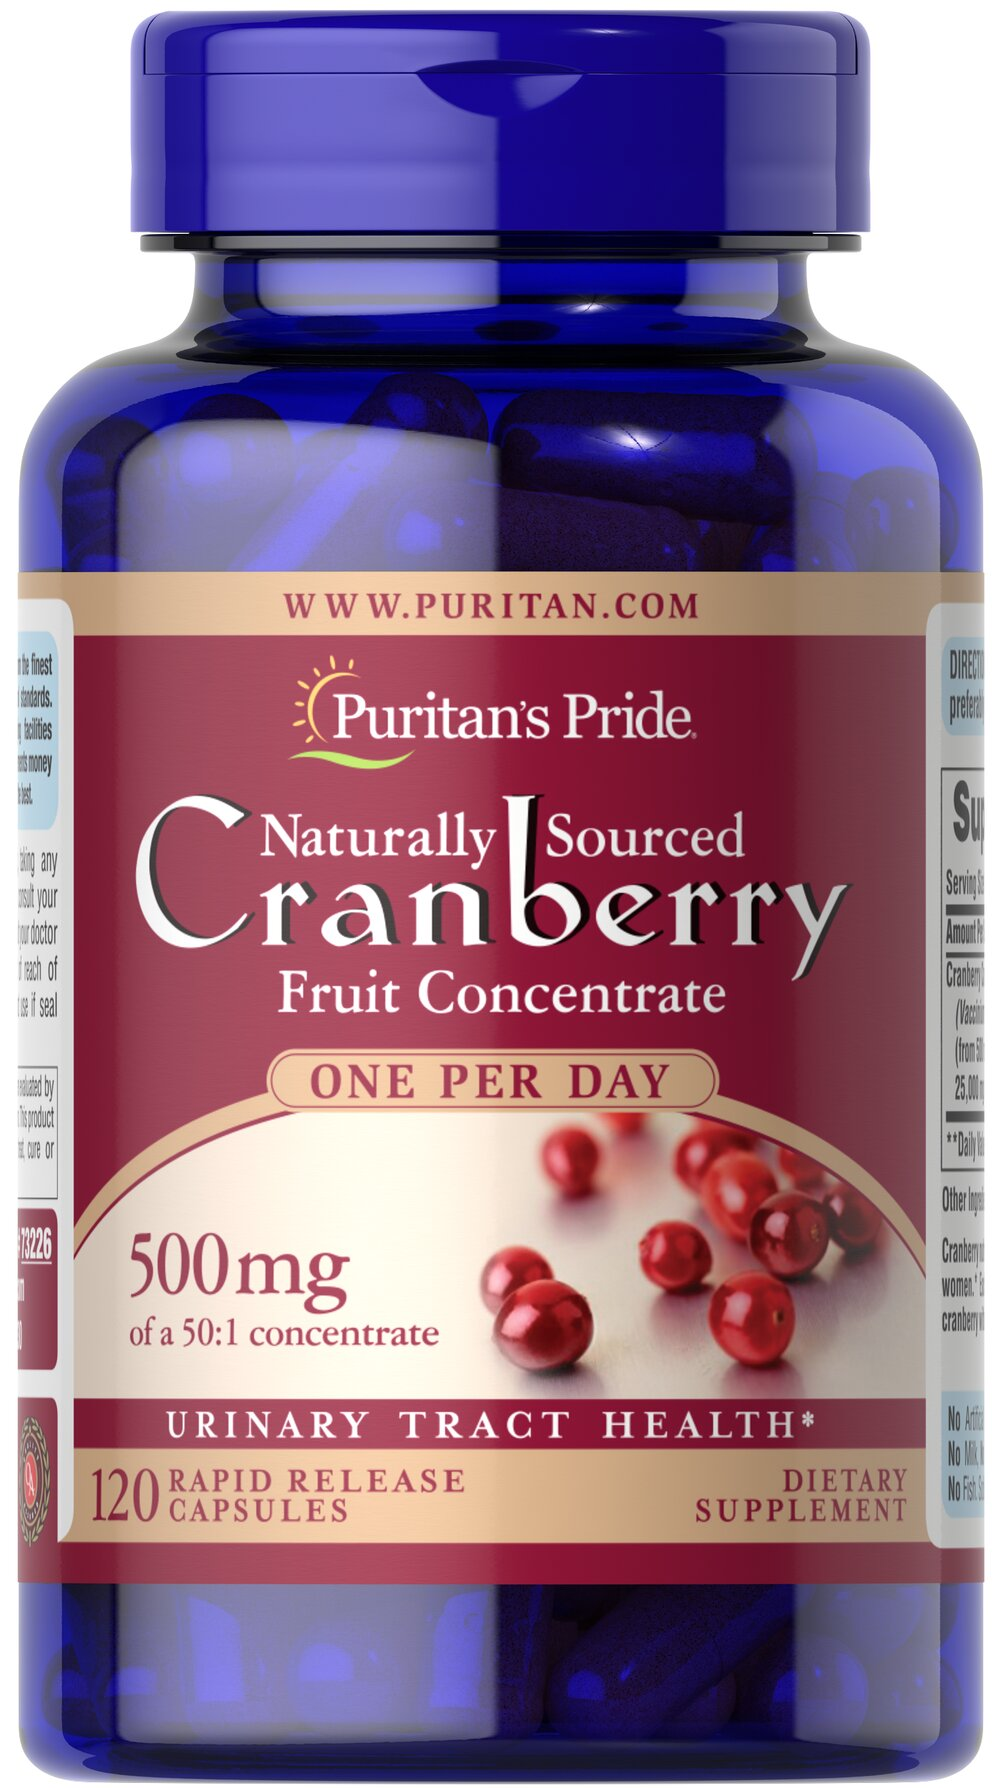 One A Day Cranberry <p>Equivalent to 25,000 mg of Cranberry Fruit per Capsule.</p><p>For years, health experts have recommended cranberry to help promote urinary tract health.**</p><p>Each dose provides the natural benefits of the whole cranberry without any preservatives, sugars, water, flavoring or color.</p> 120 Capsules 500 mg